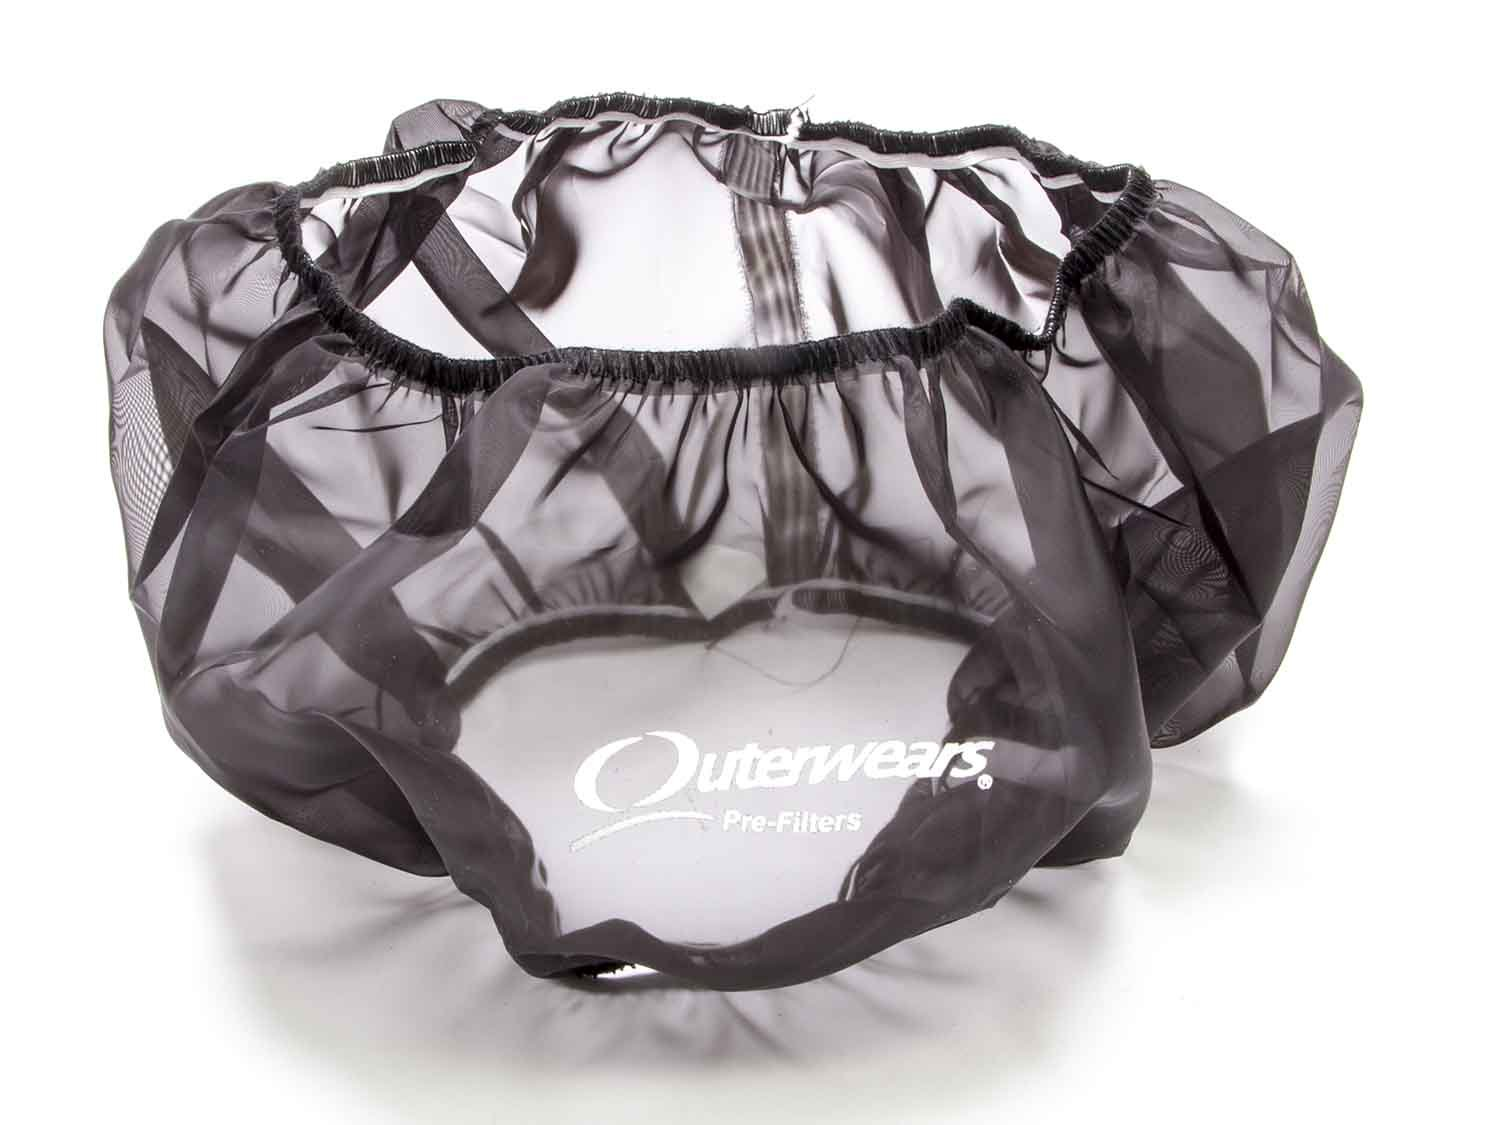 Outerwears 10-1026-01 Pre-Filter